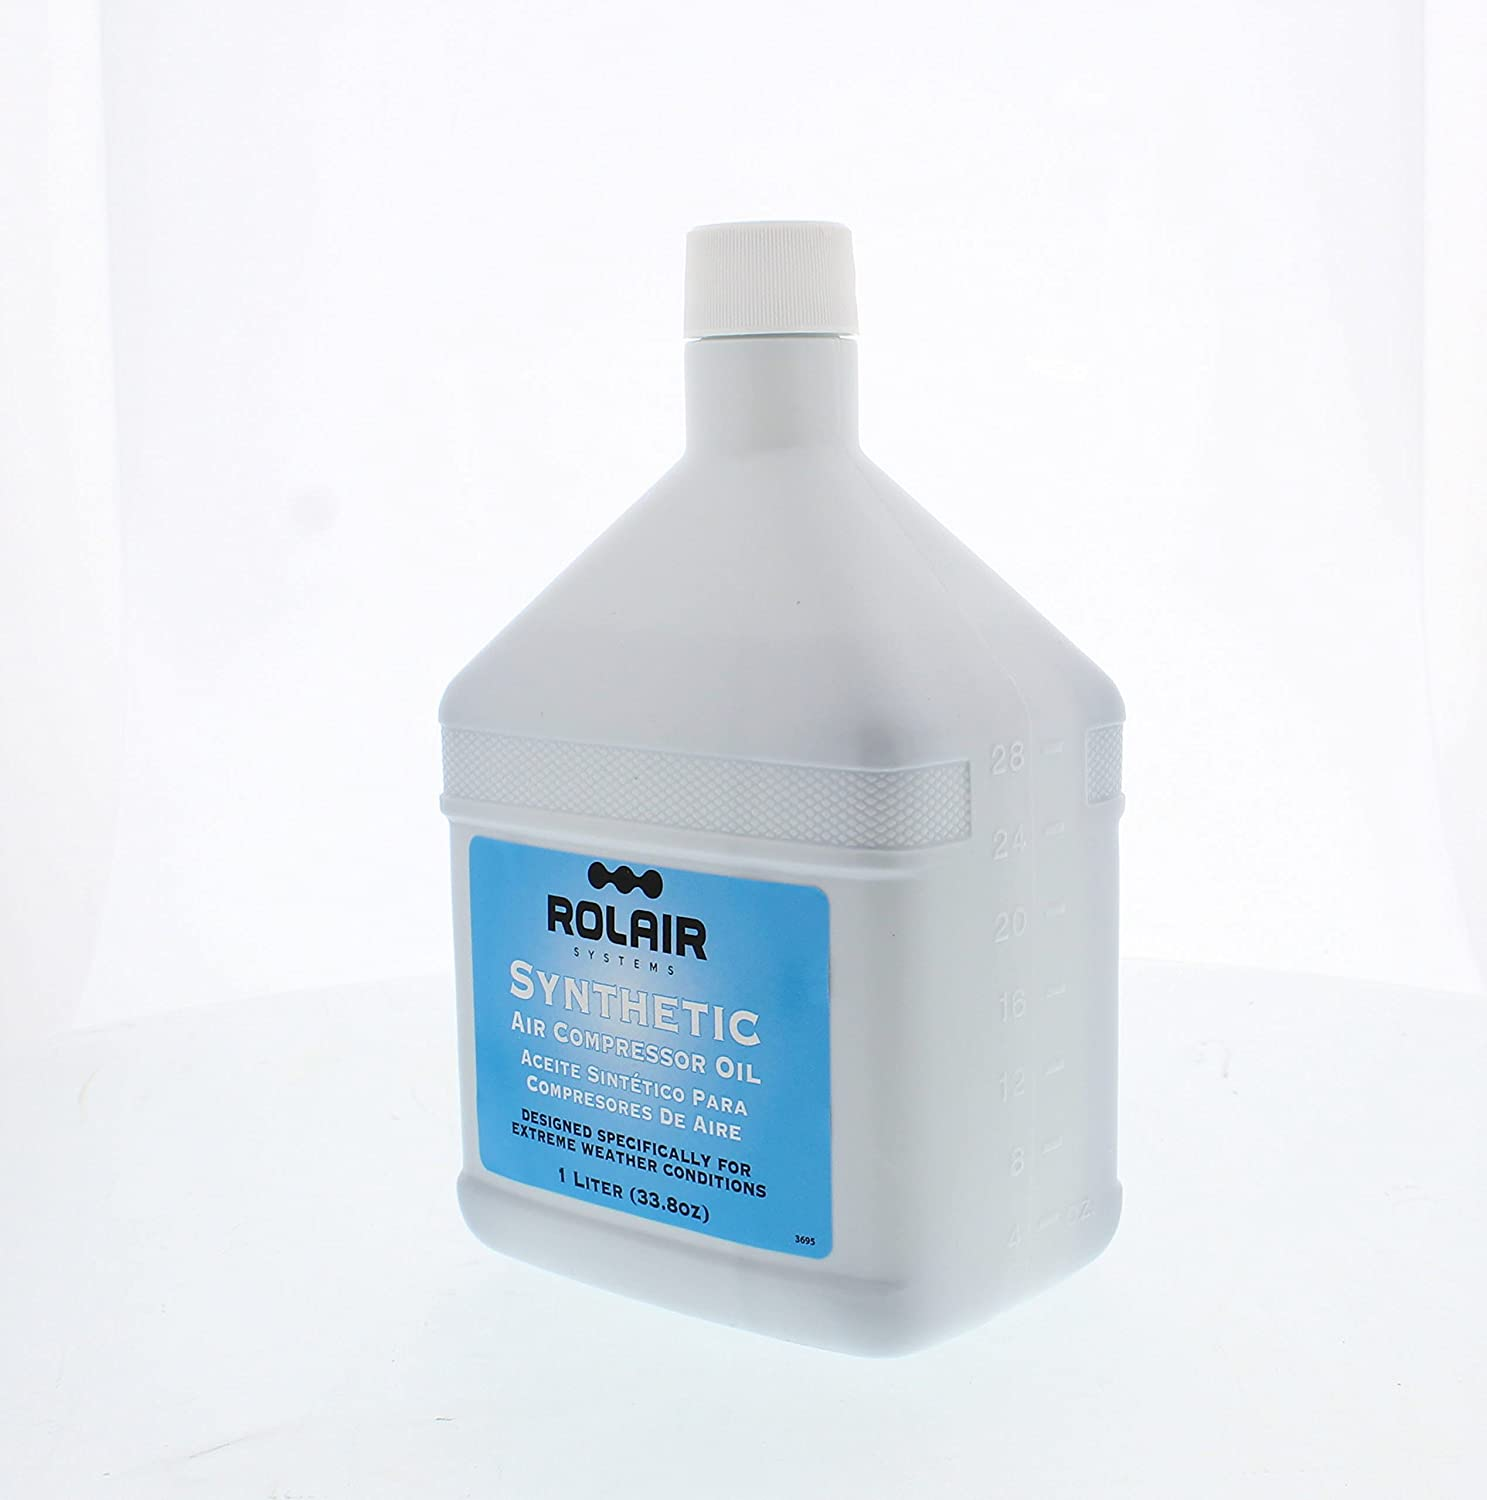 Rolair oilsyn34 Synthetic Compressor Oil All Temp 1 Qt - Tools Products - Amazon.com